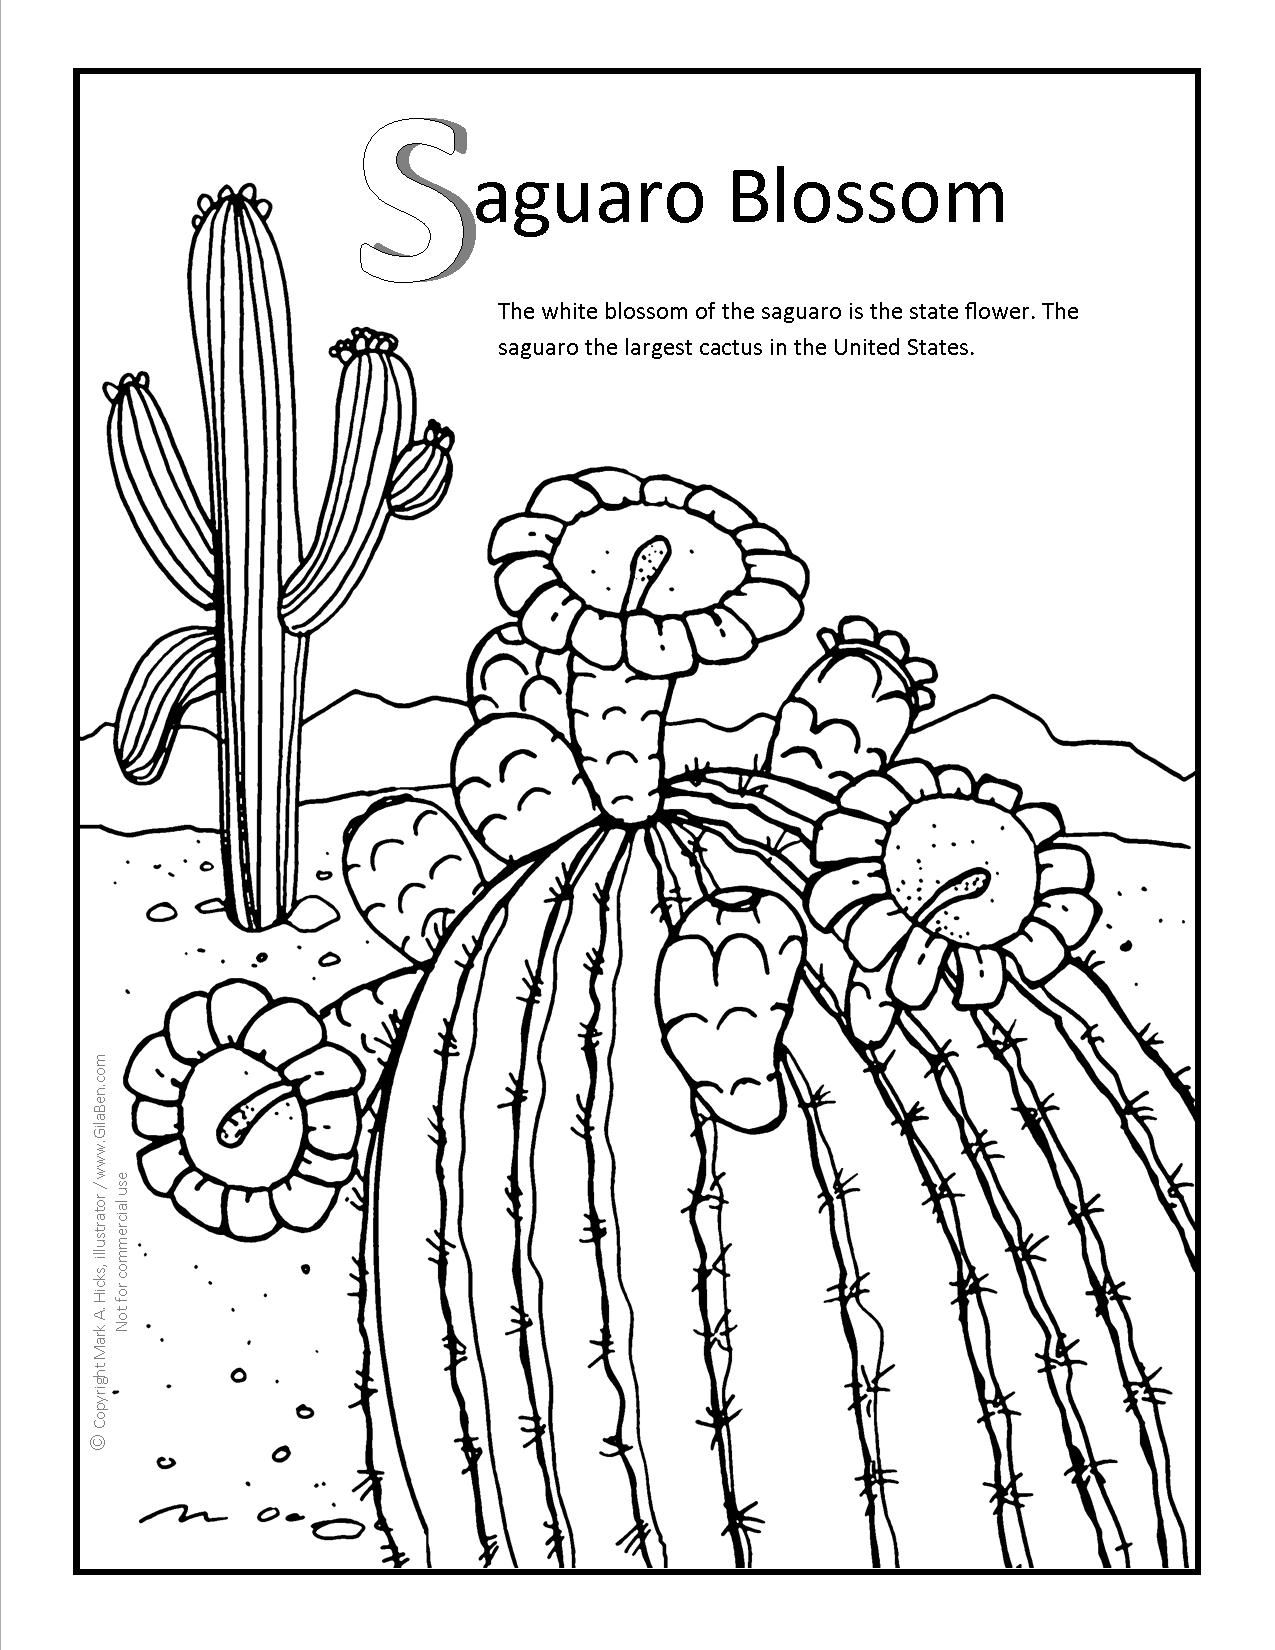 Saguaro Blossom Coloring Page At Gilaben Com With Images